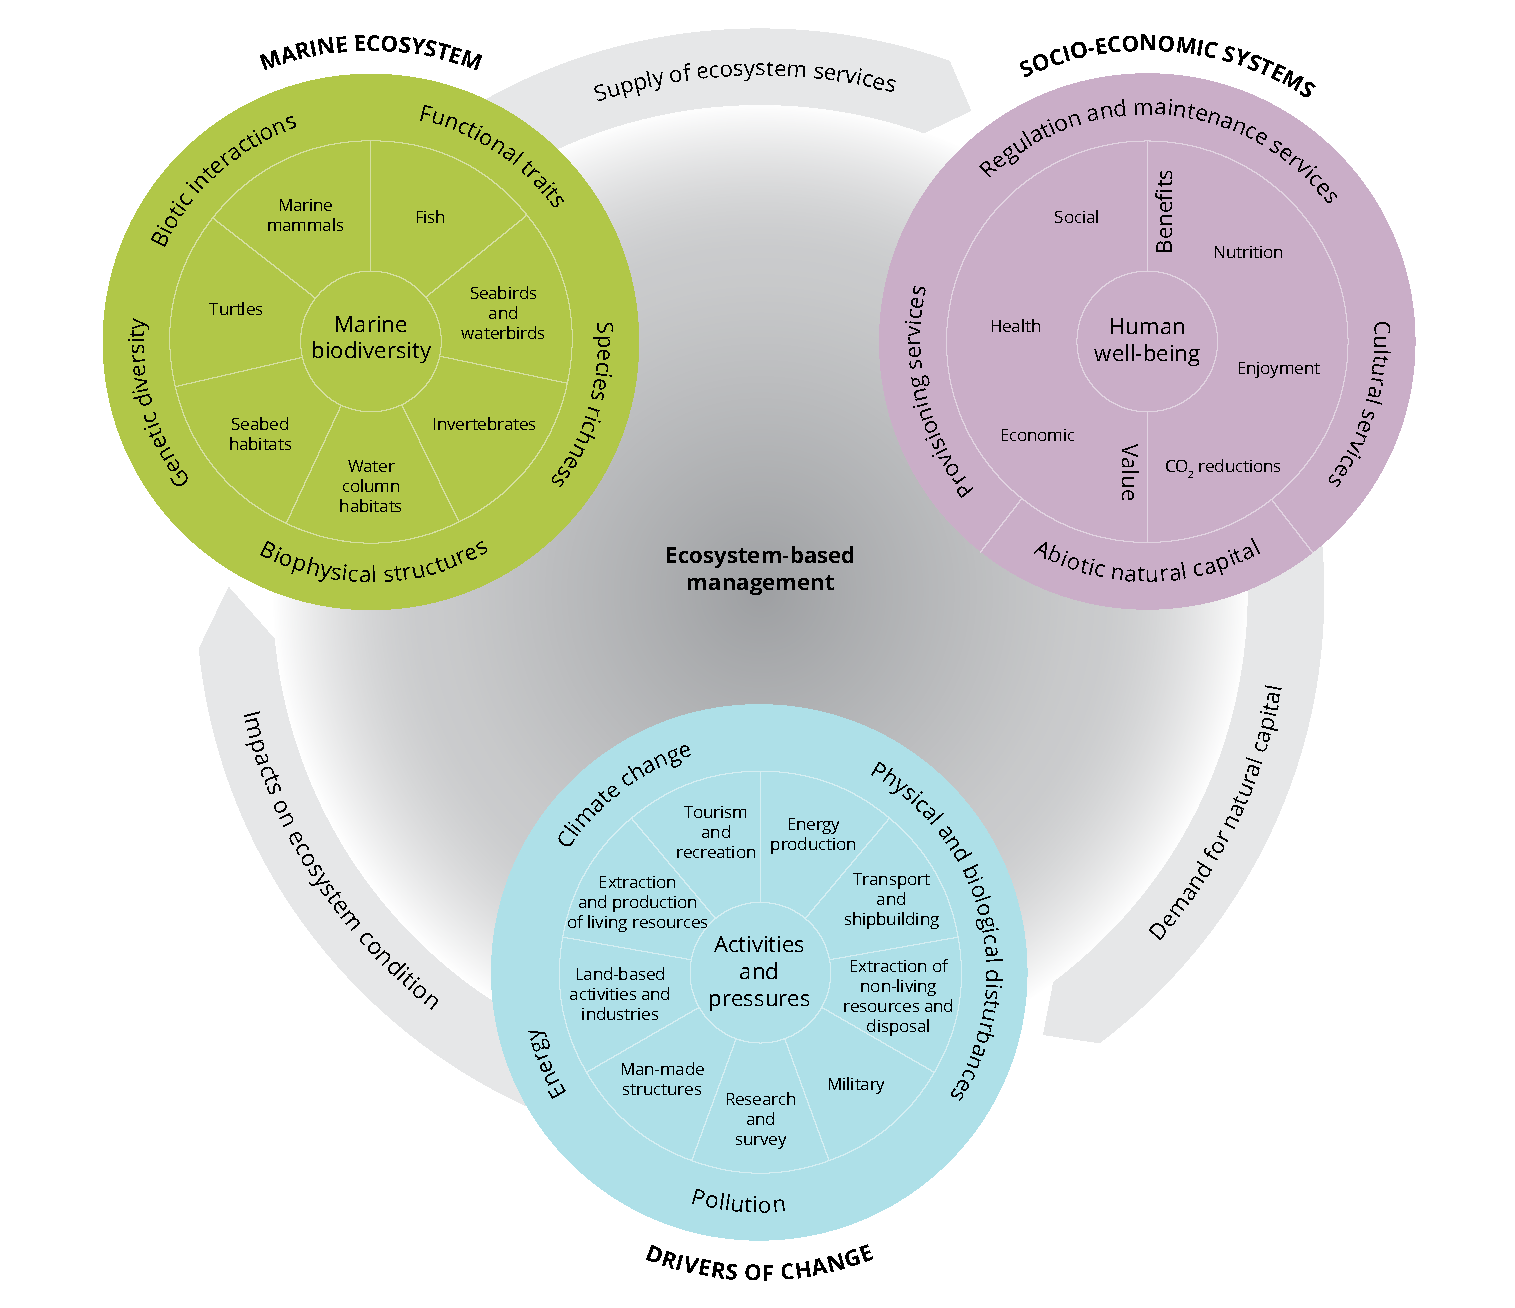 Ecosystem-based assessment